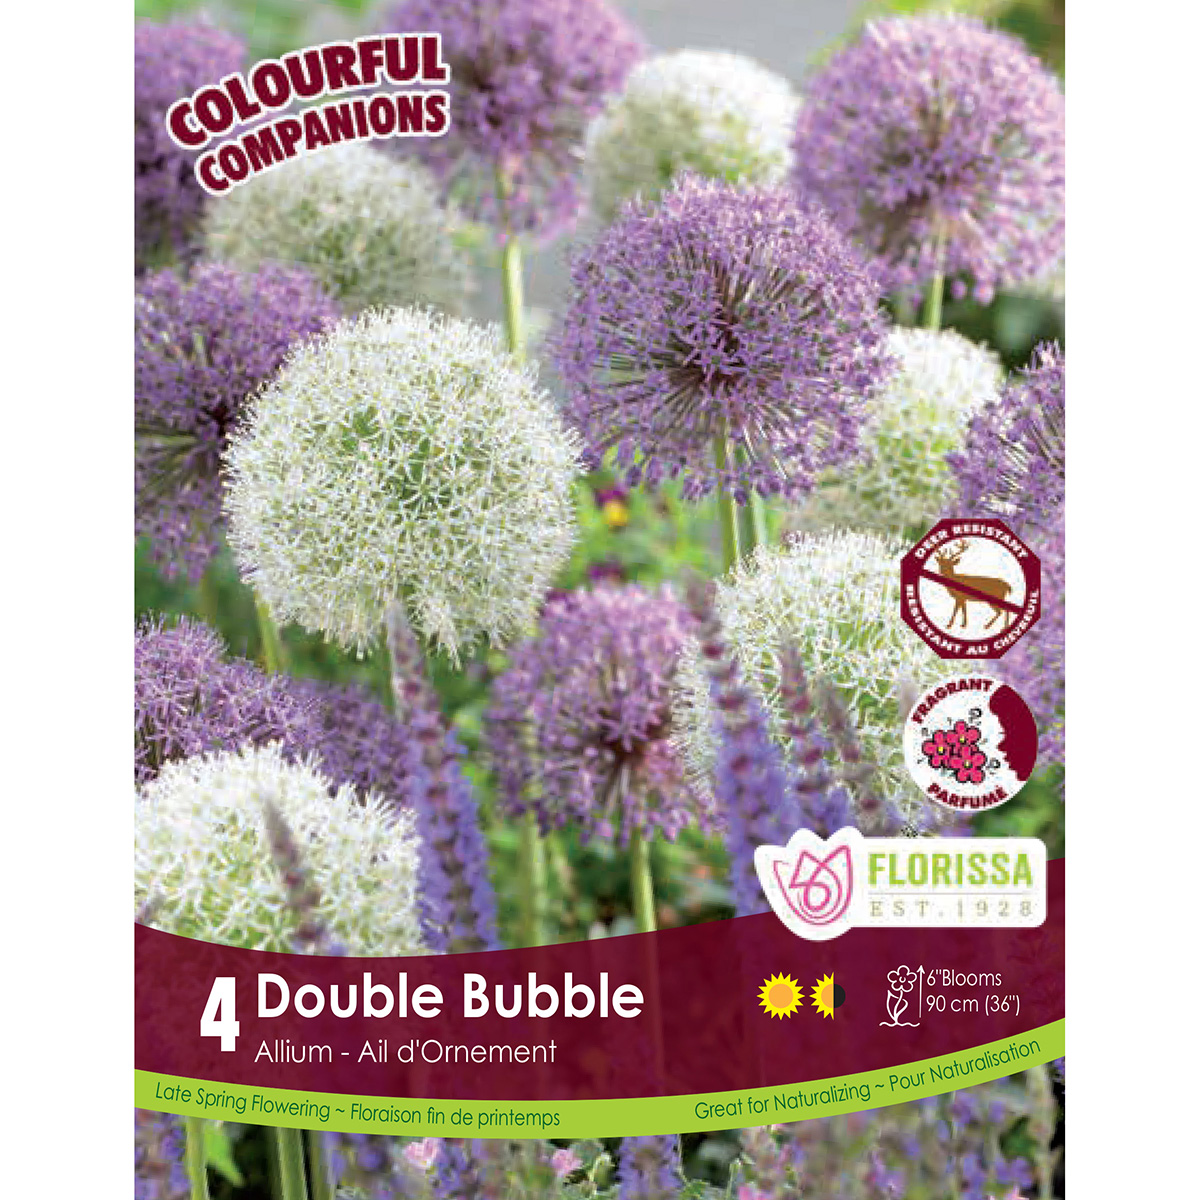 Colourful Companions Allium 'Double Bubble' Bulbs